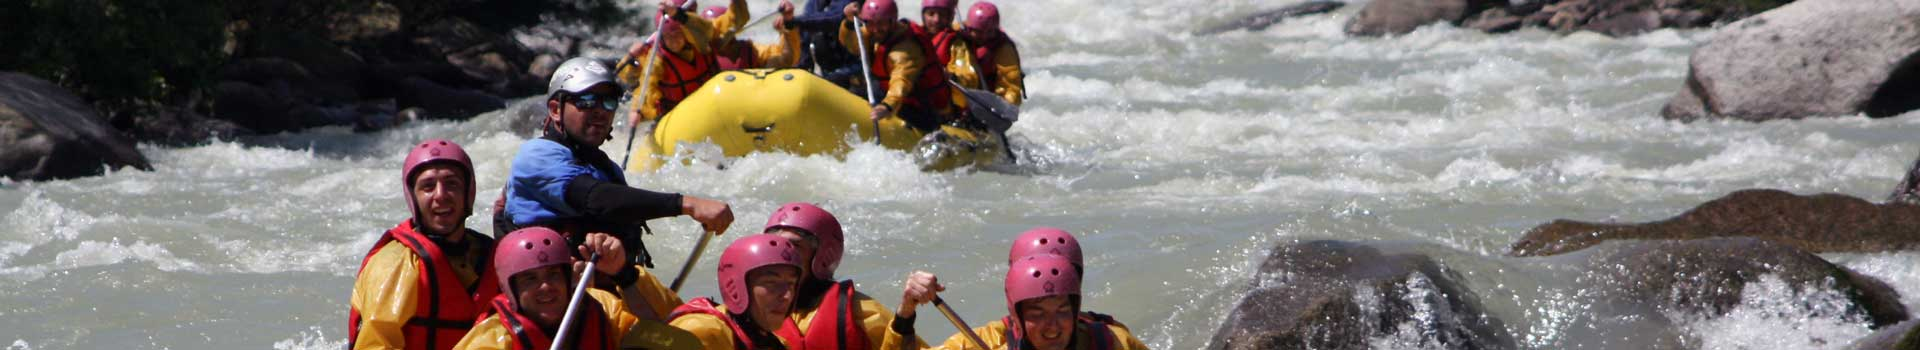 rafting fiume Noce